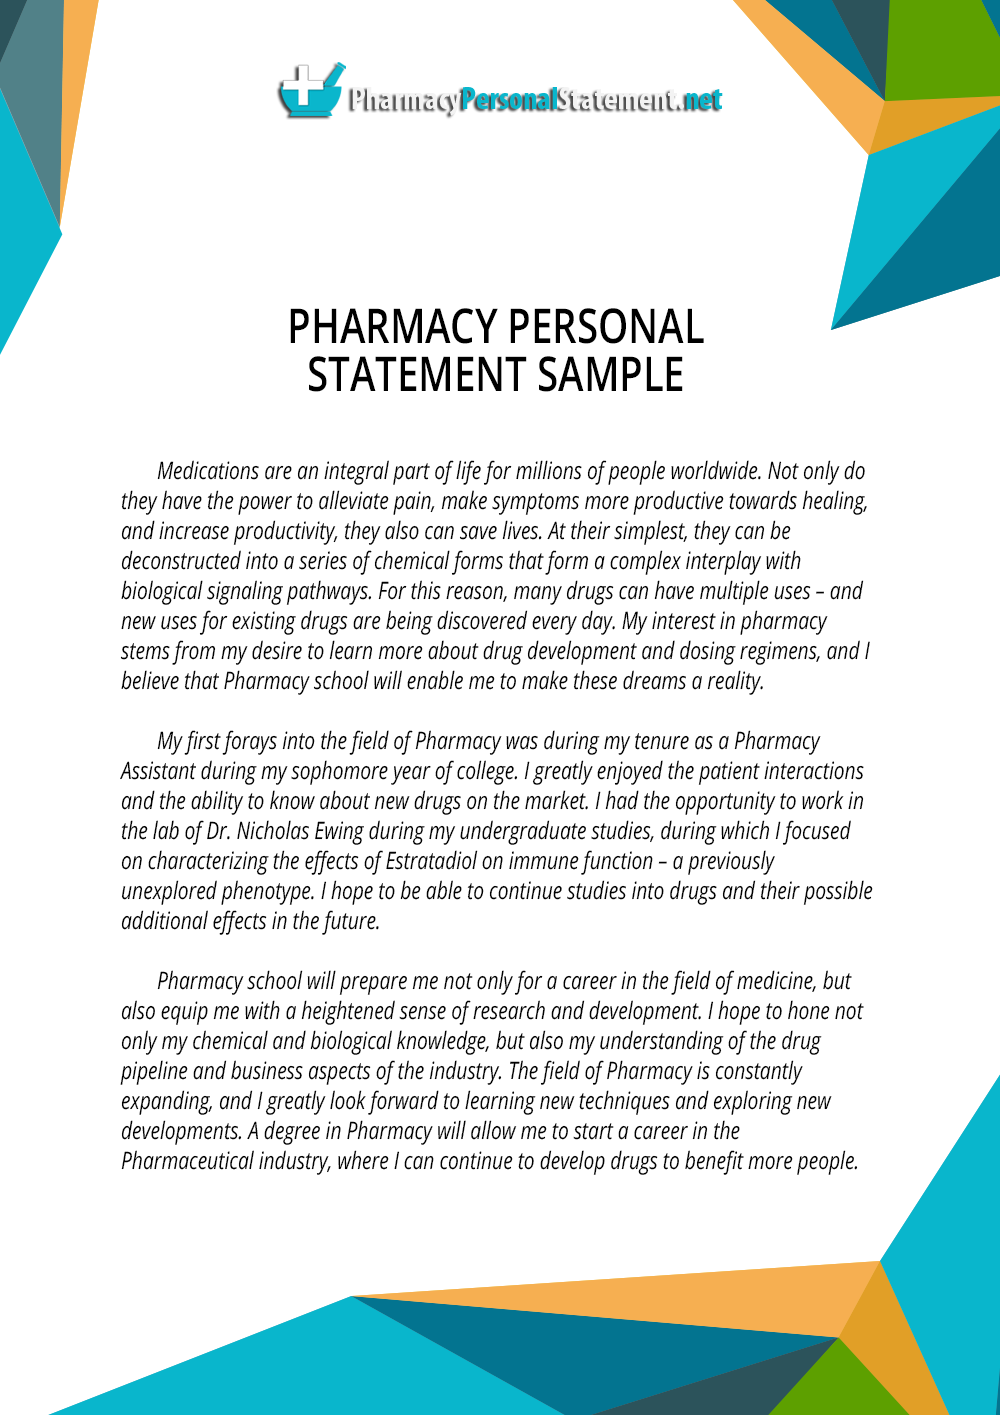 How to write a good essay for pharmacy school